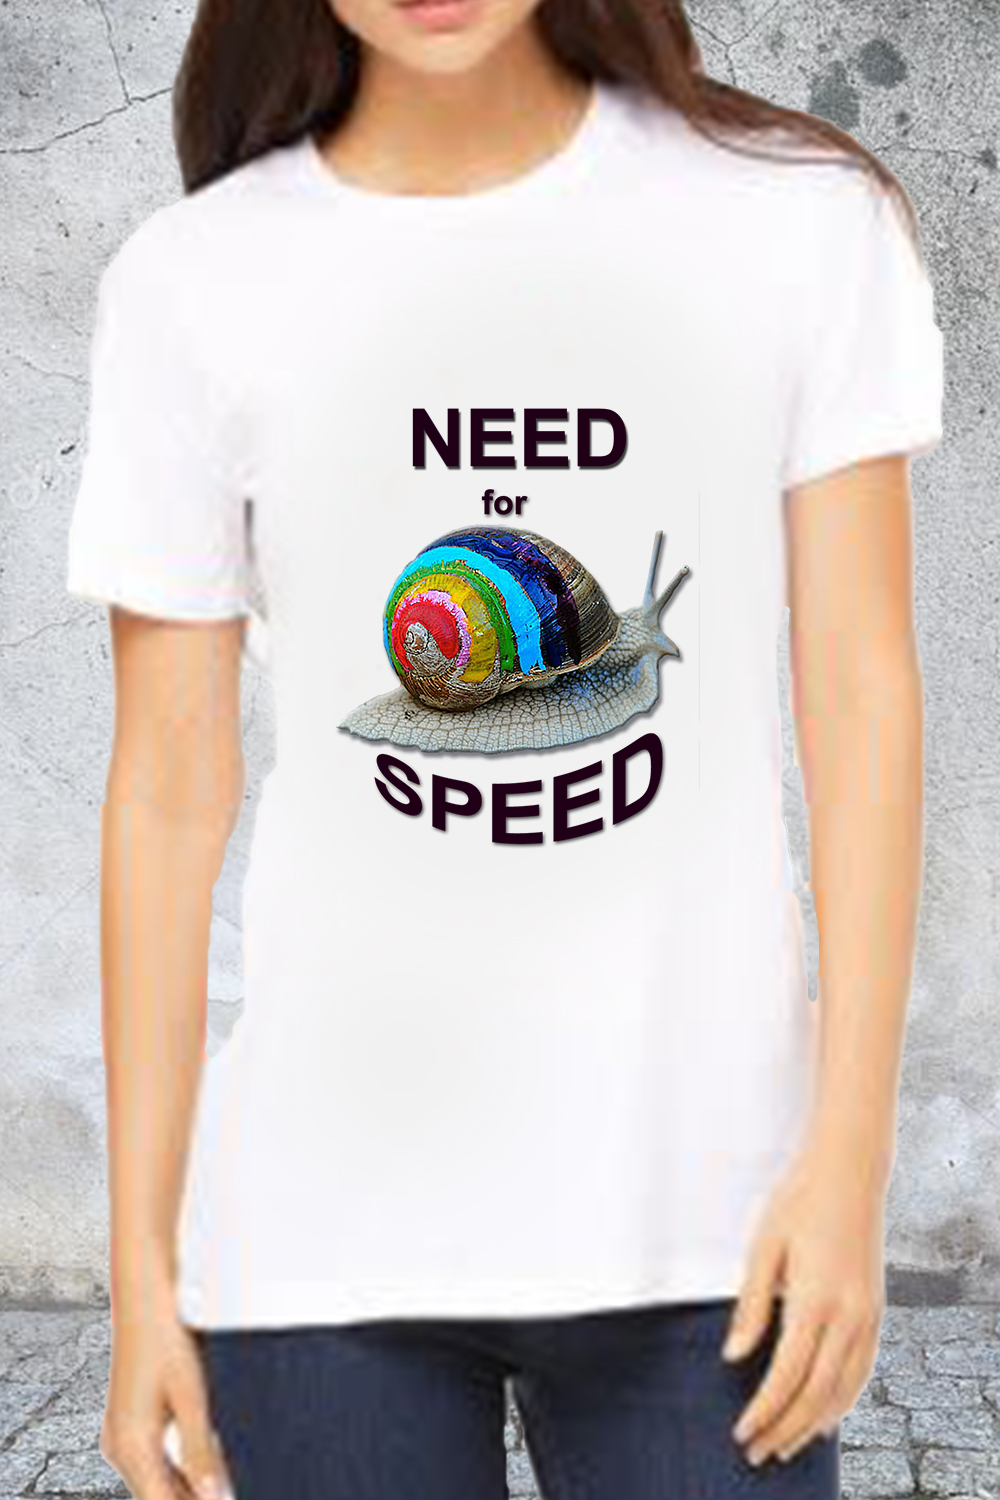 Tricou dama imprimeu, tricou dama need for speed, imprimeu need for speed